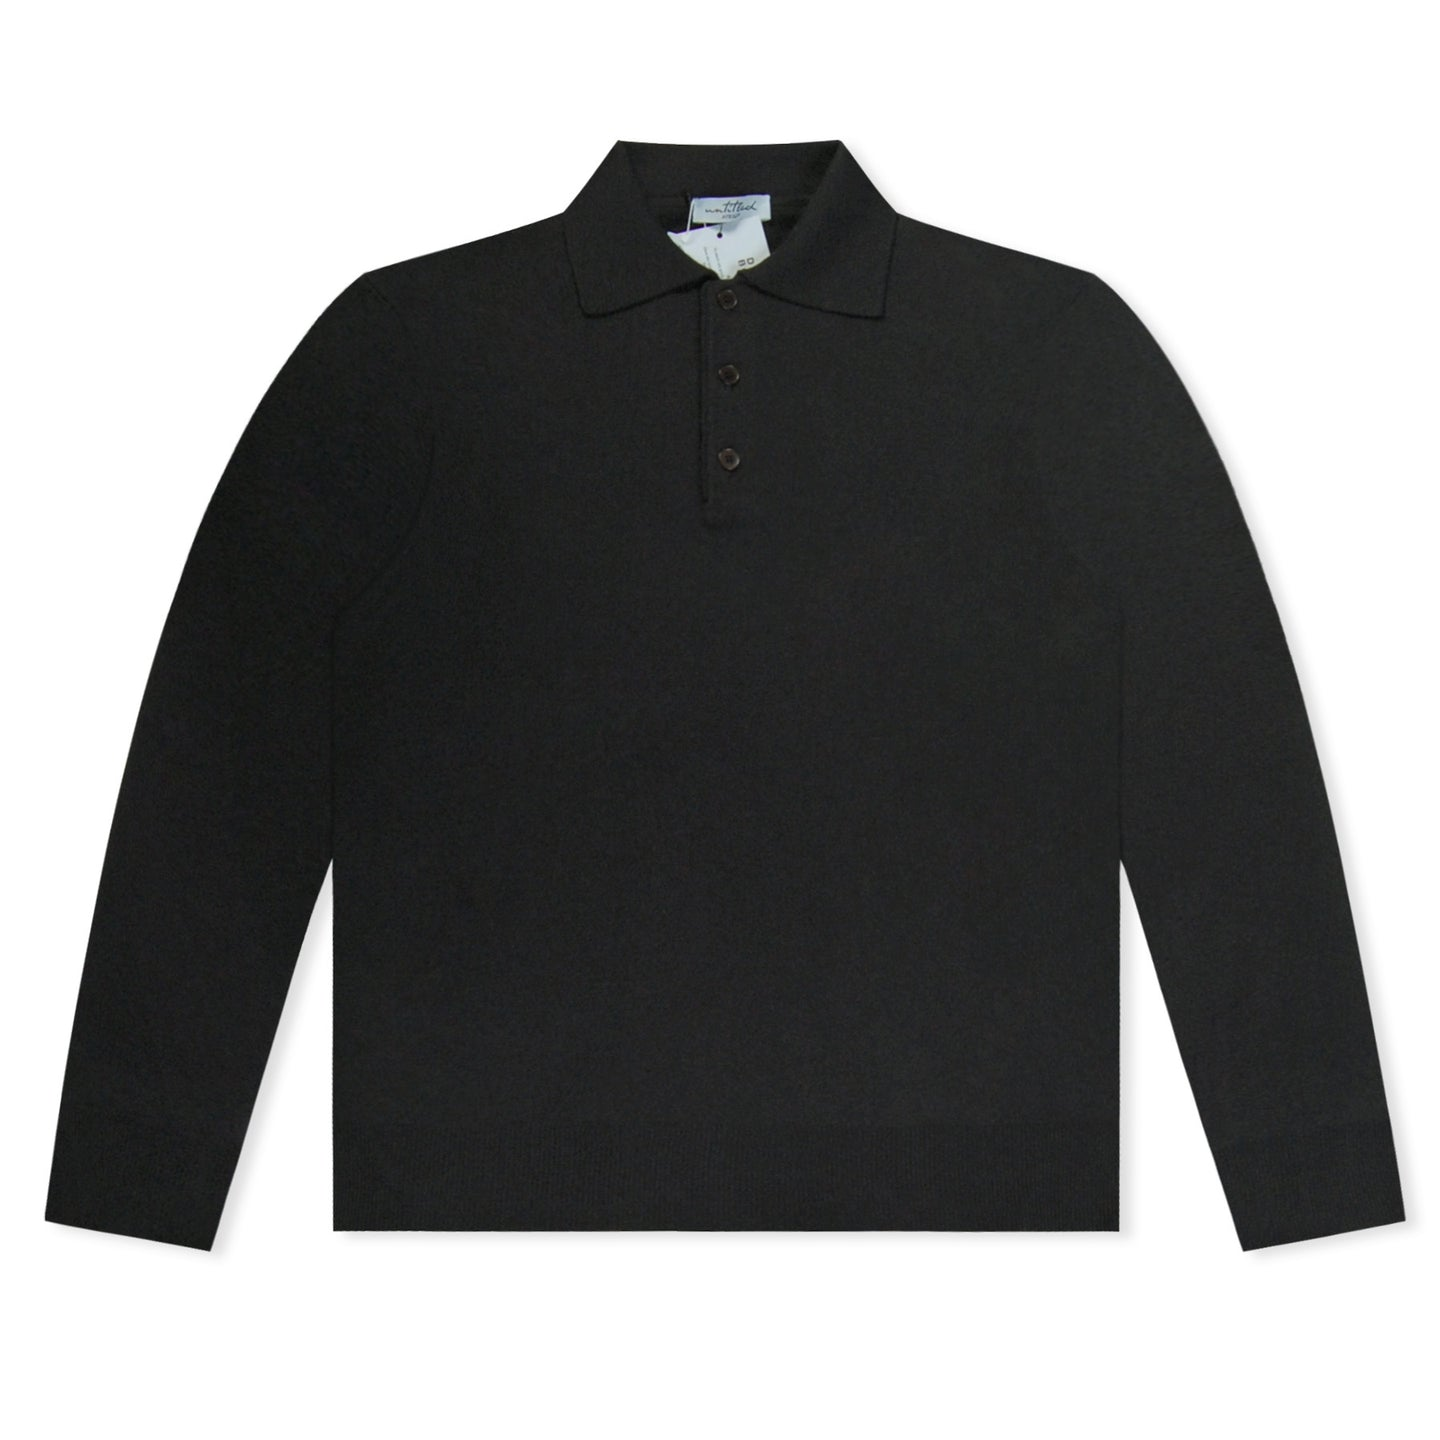 Black Untitled Atelier Knitted Polo